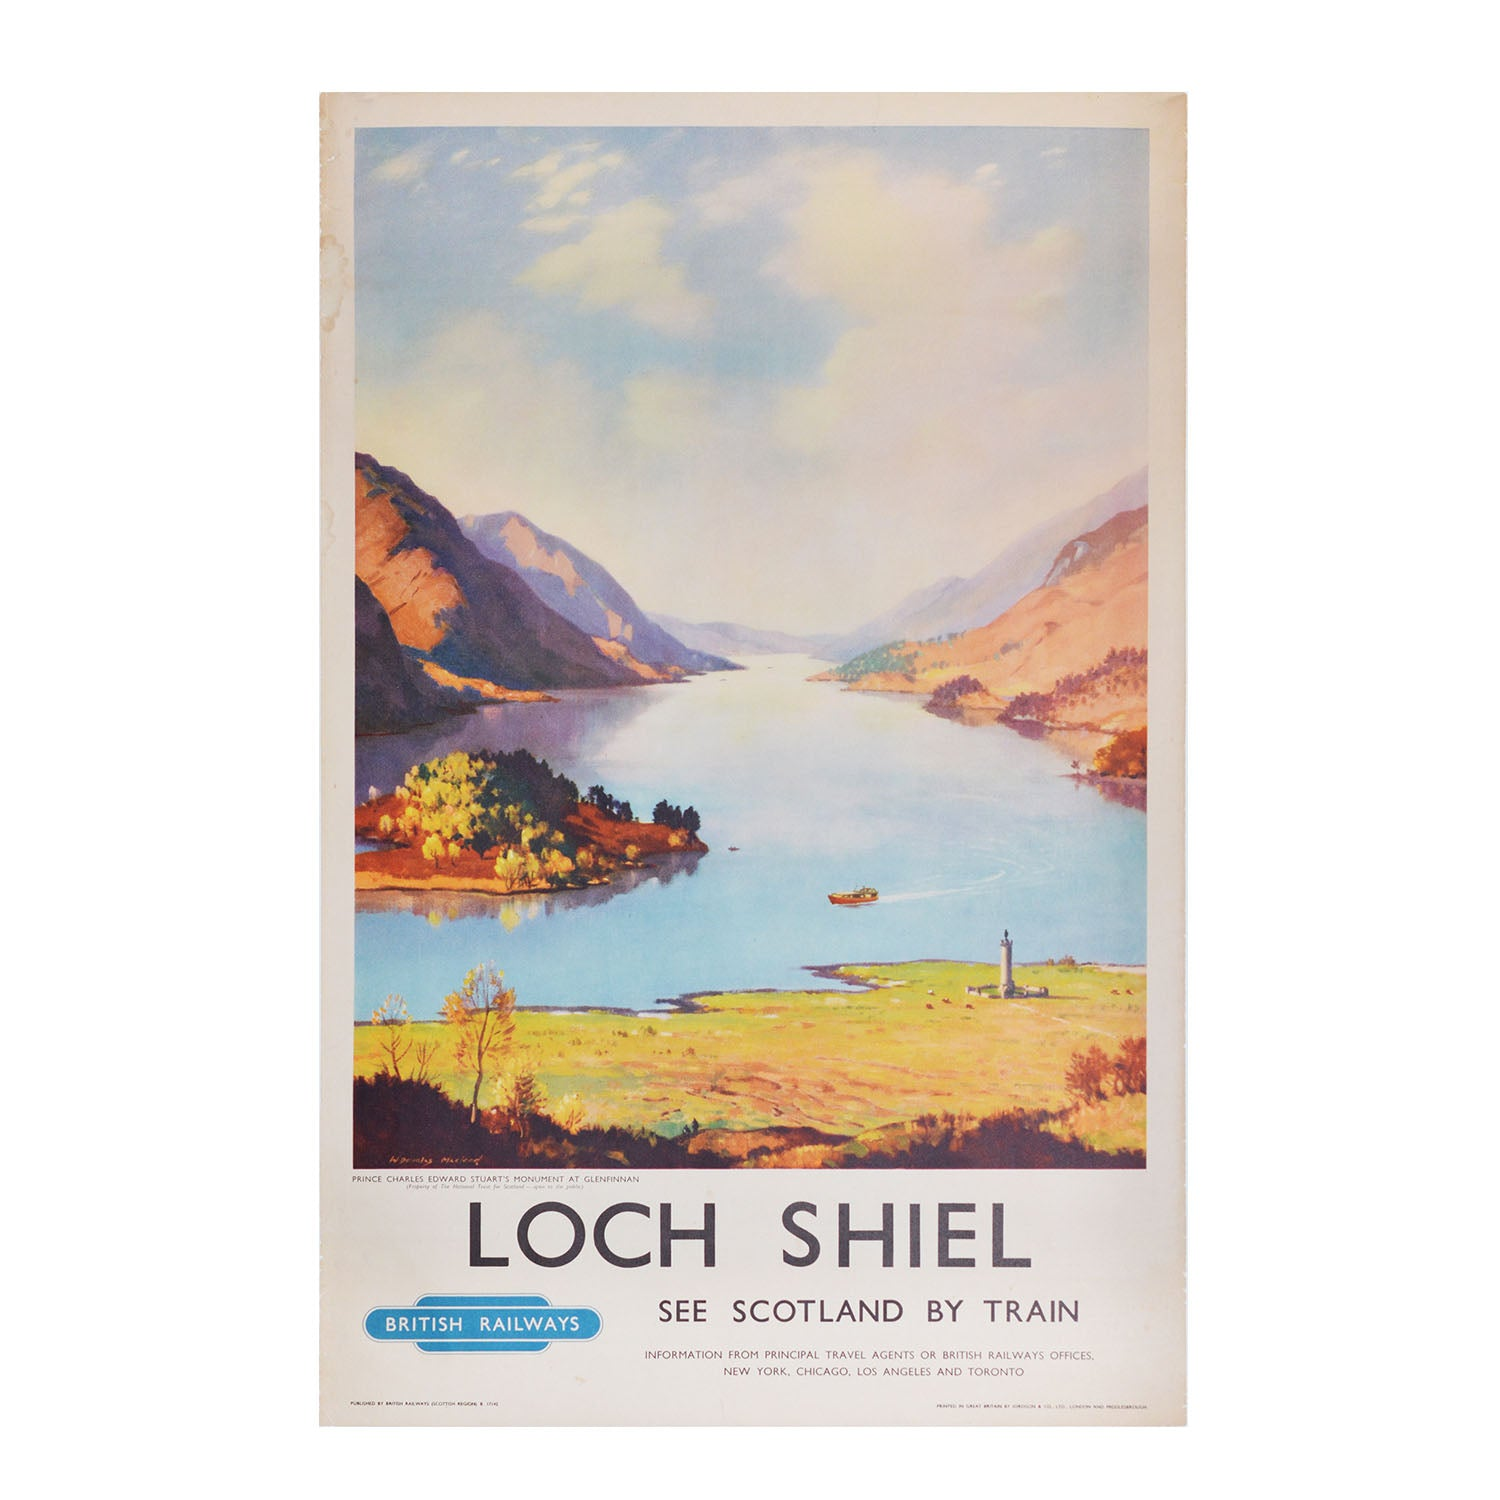 Original British Railways Loch Shiel poster